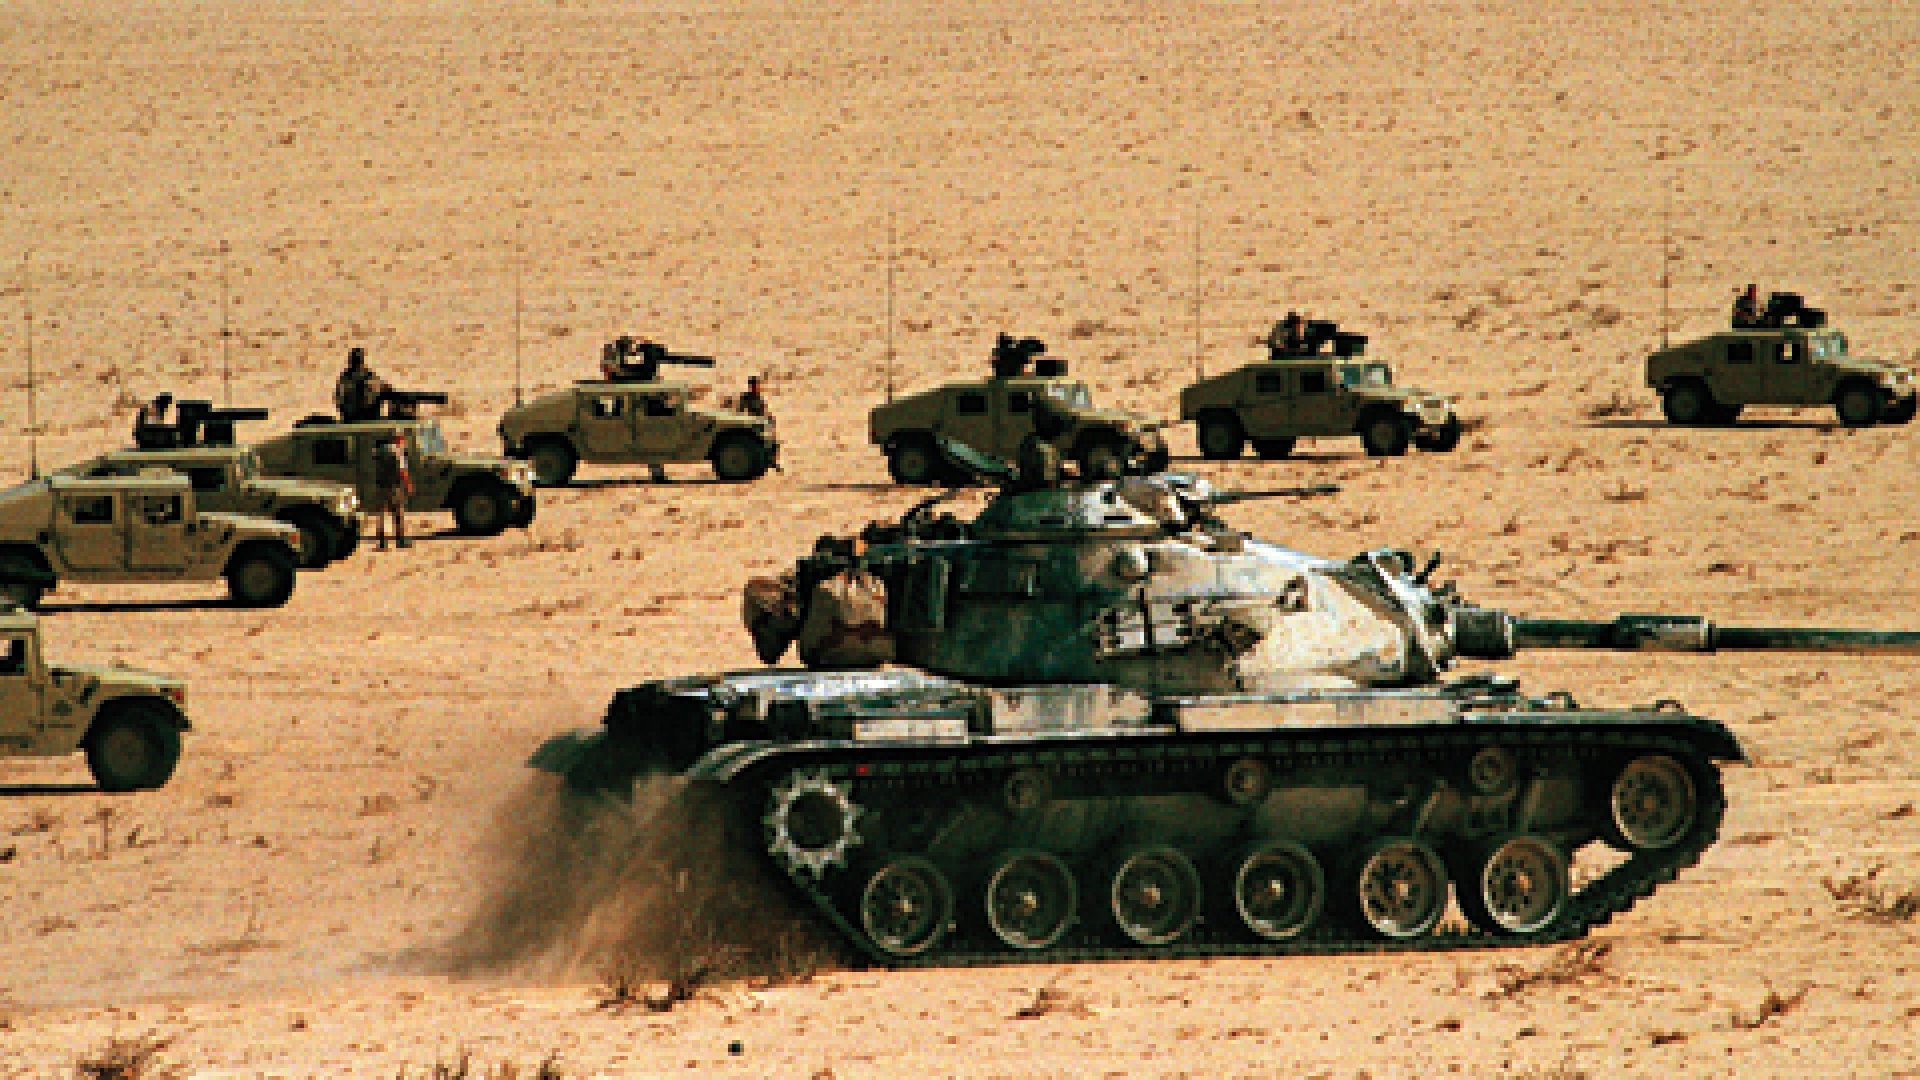 A Marine M-60 tank leads an assault of Humvee's mounted with Tow anti-tank missile launchers during an exercise in Saudi Arabia.